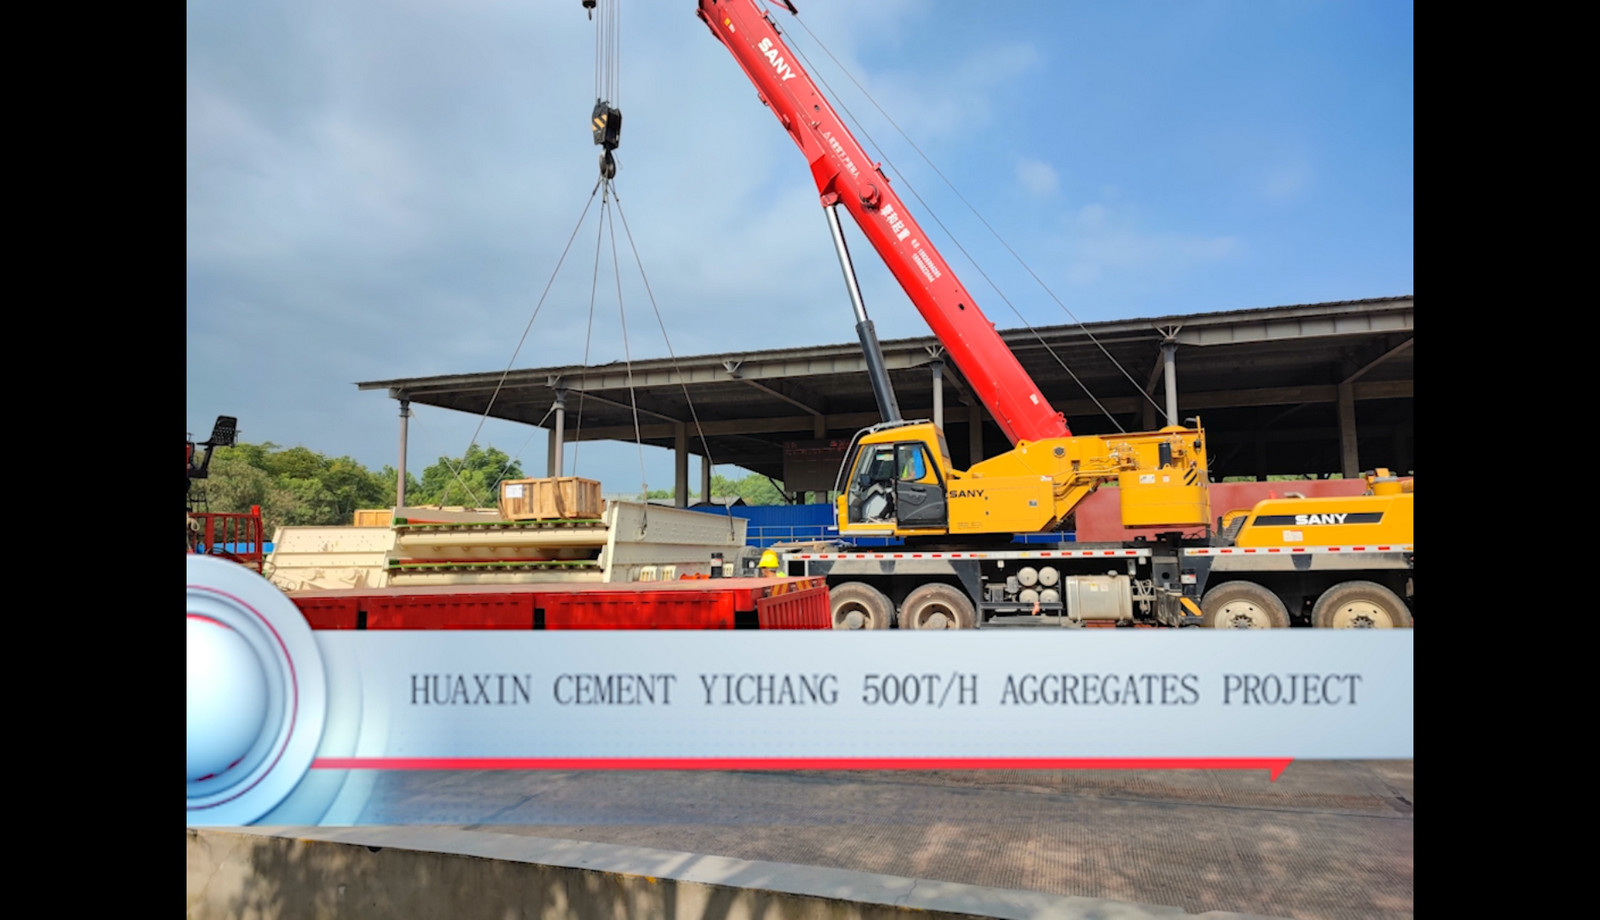 Huaxin Cement Yichang 500t/h Aggregates Project